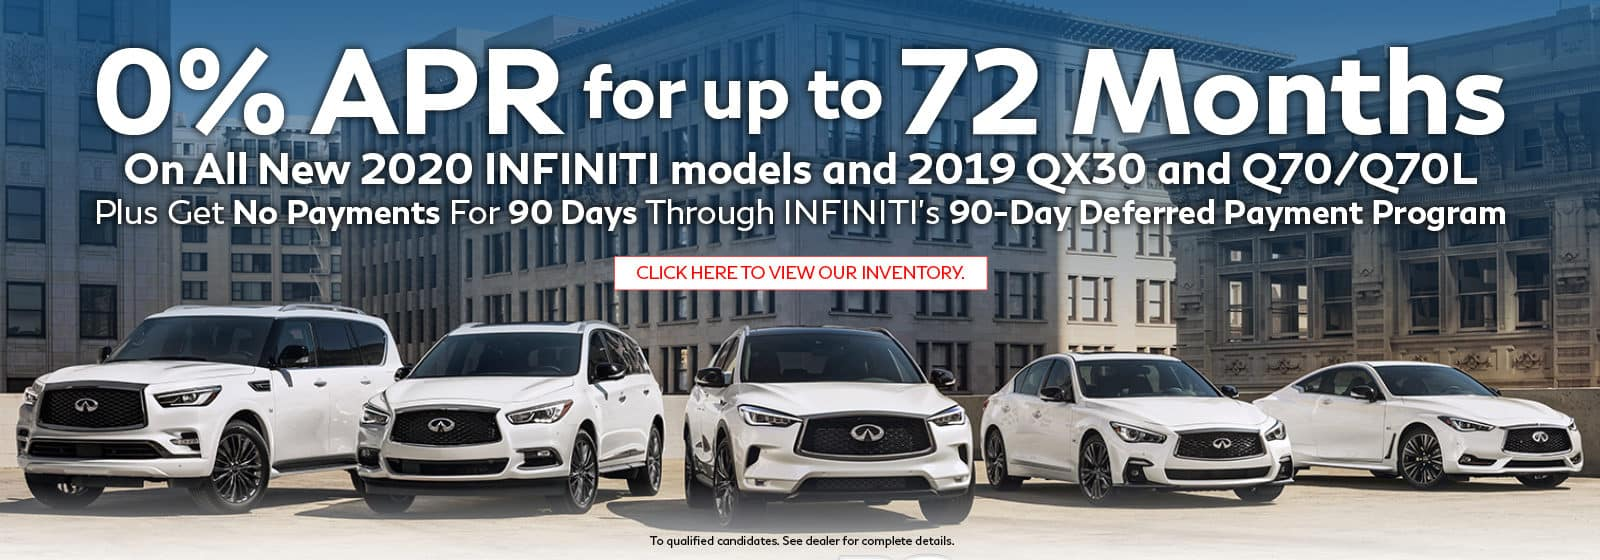 0% APR for all 2020 vehicles for 72 months. See retailer for compete details.